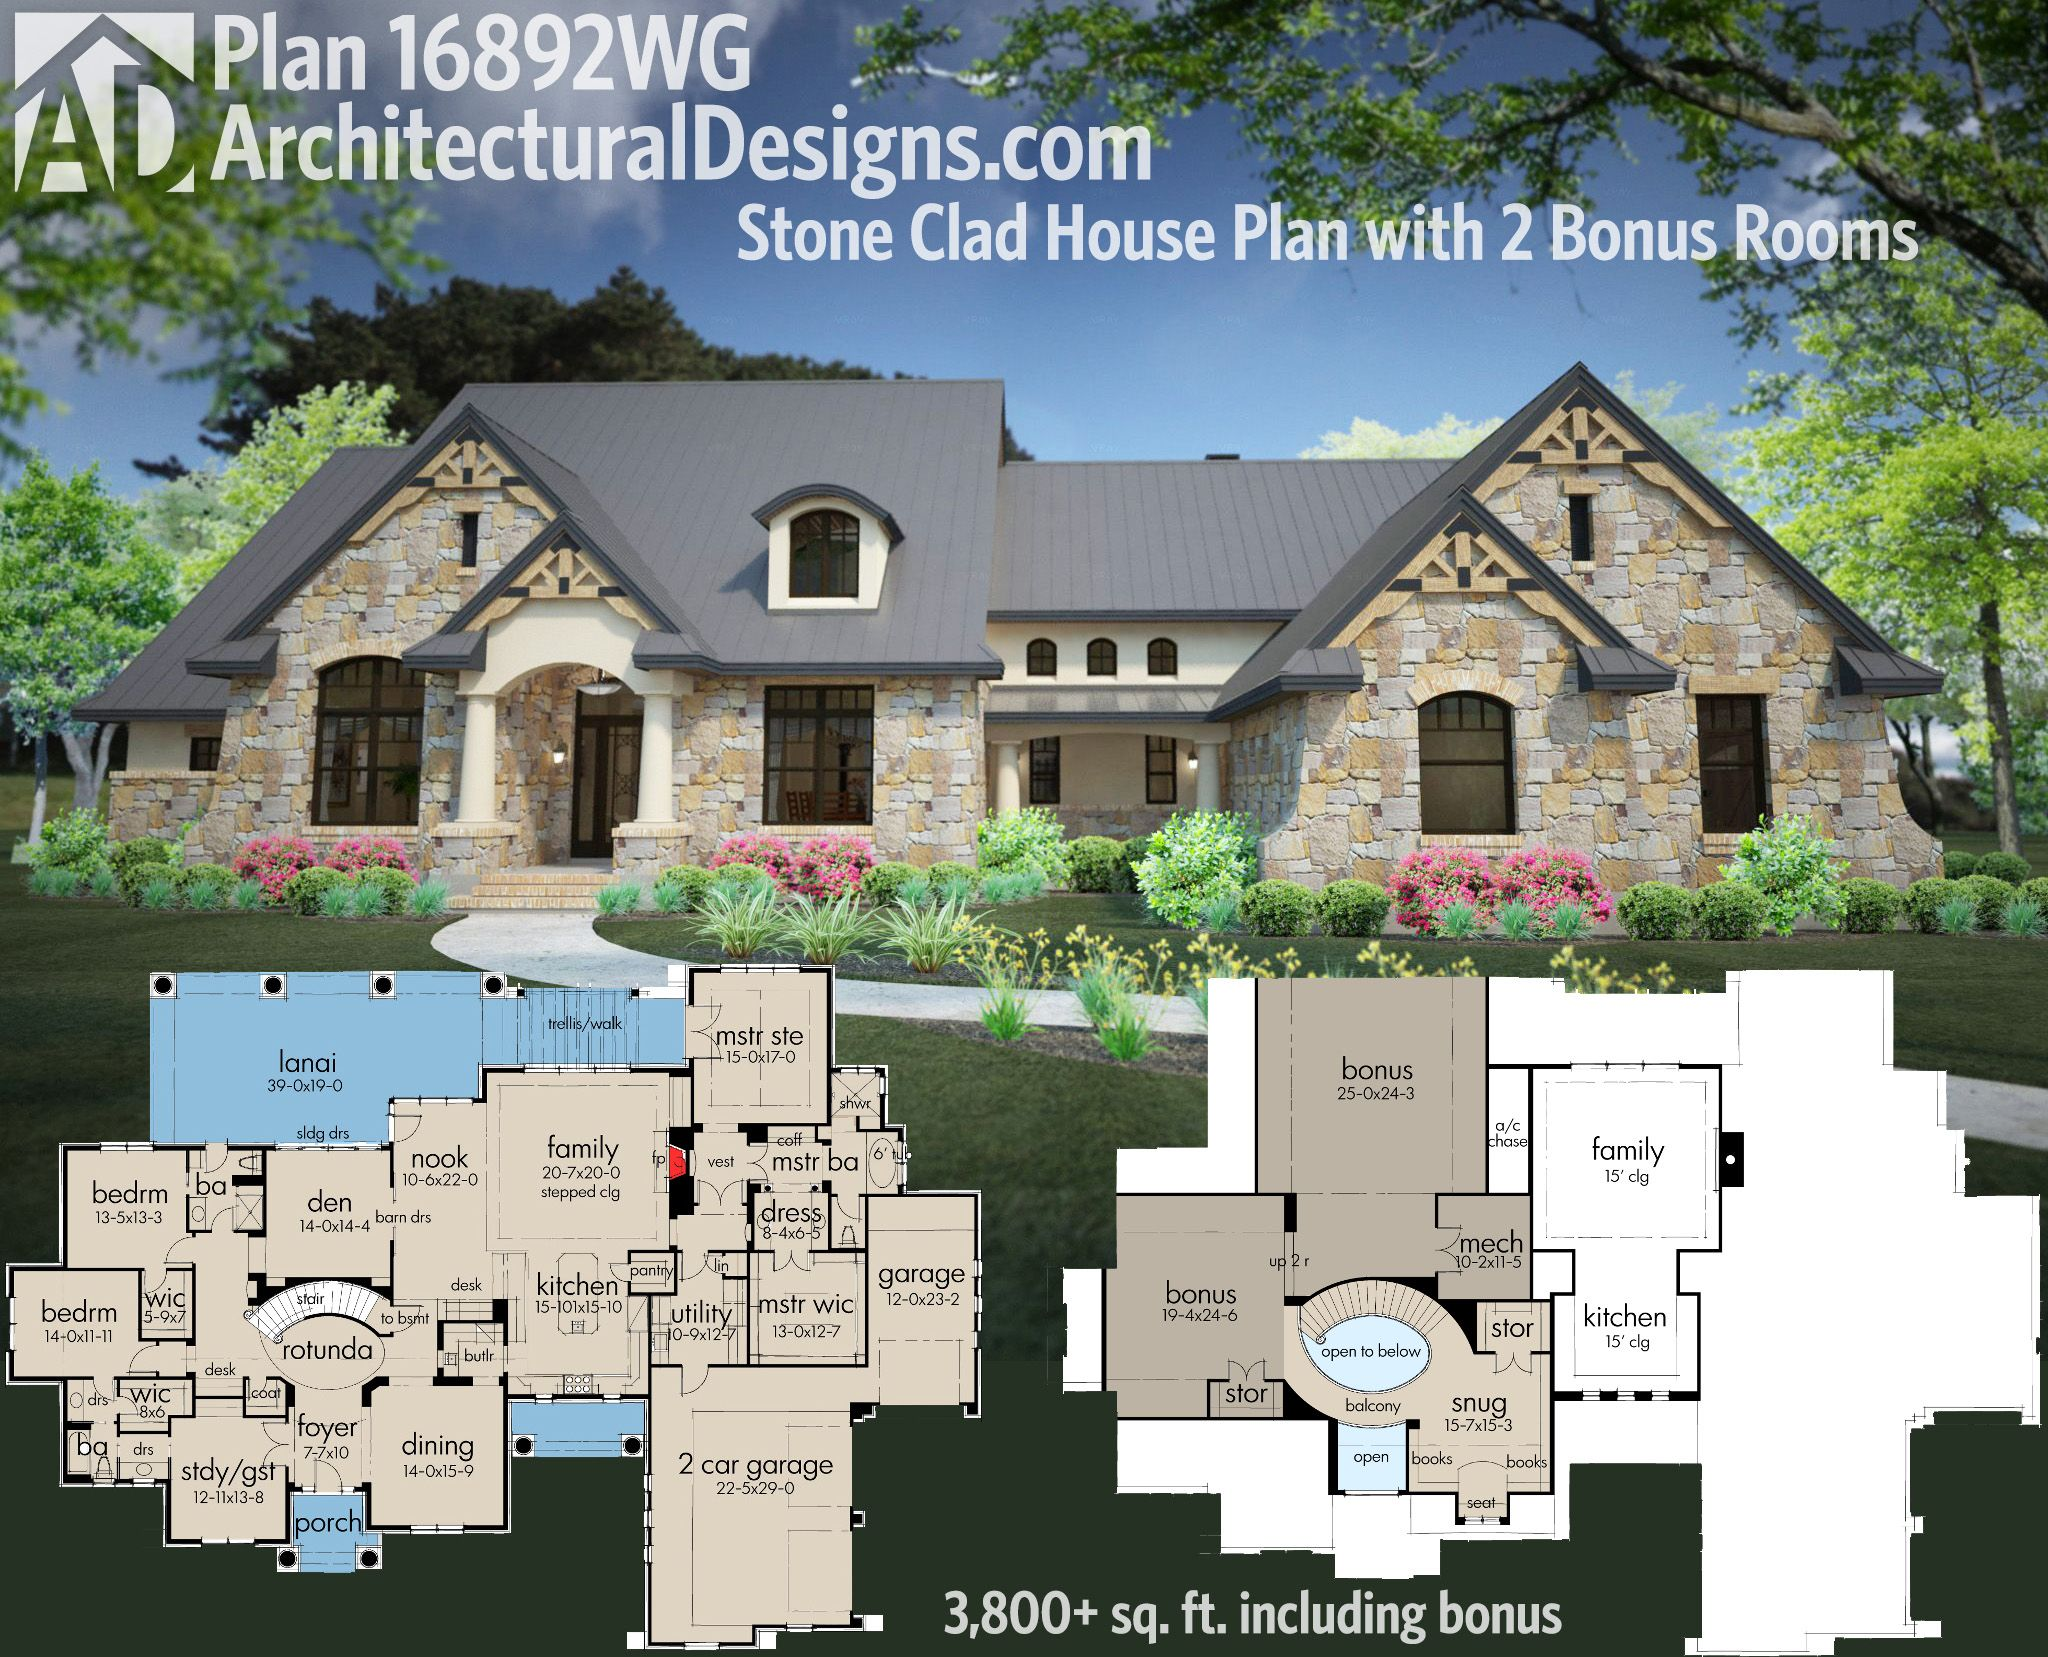 Plan 16892wg Stone Clad House Plan With 2 Bonus Rooms 3